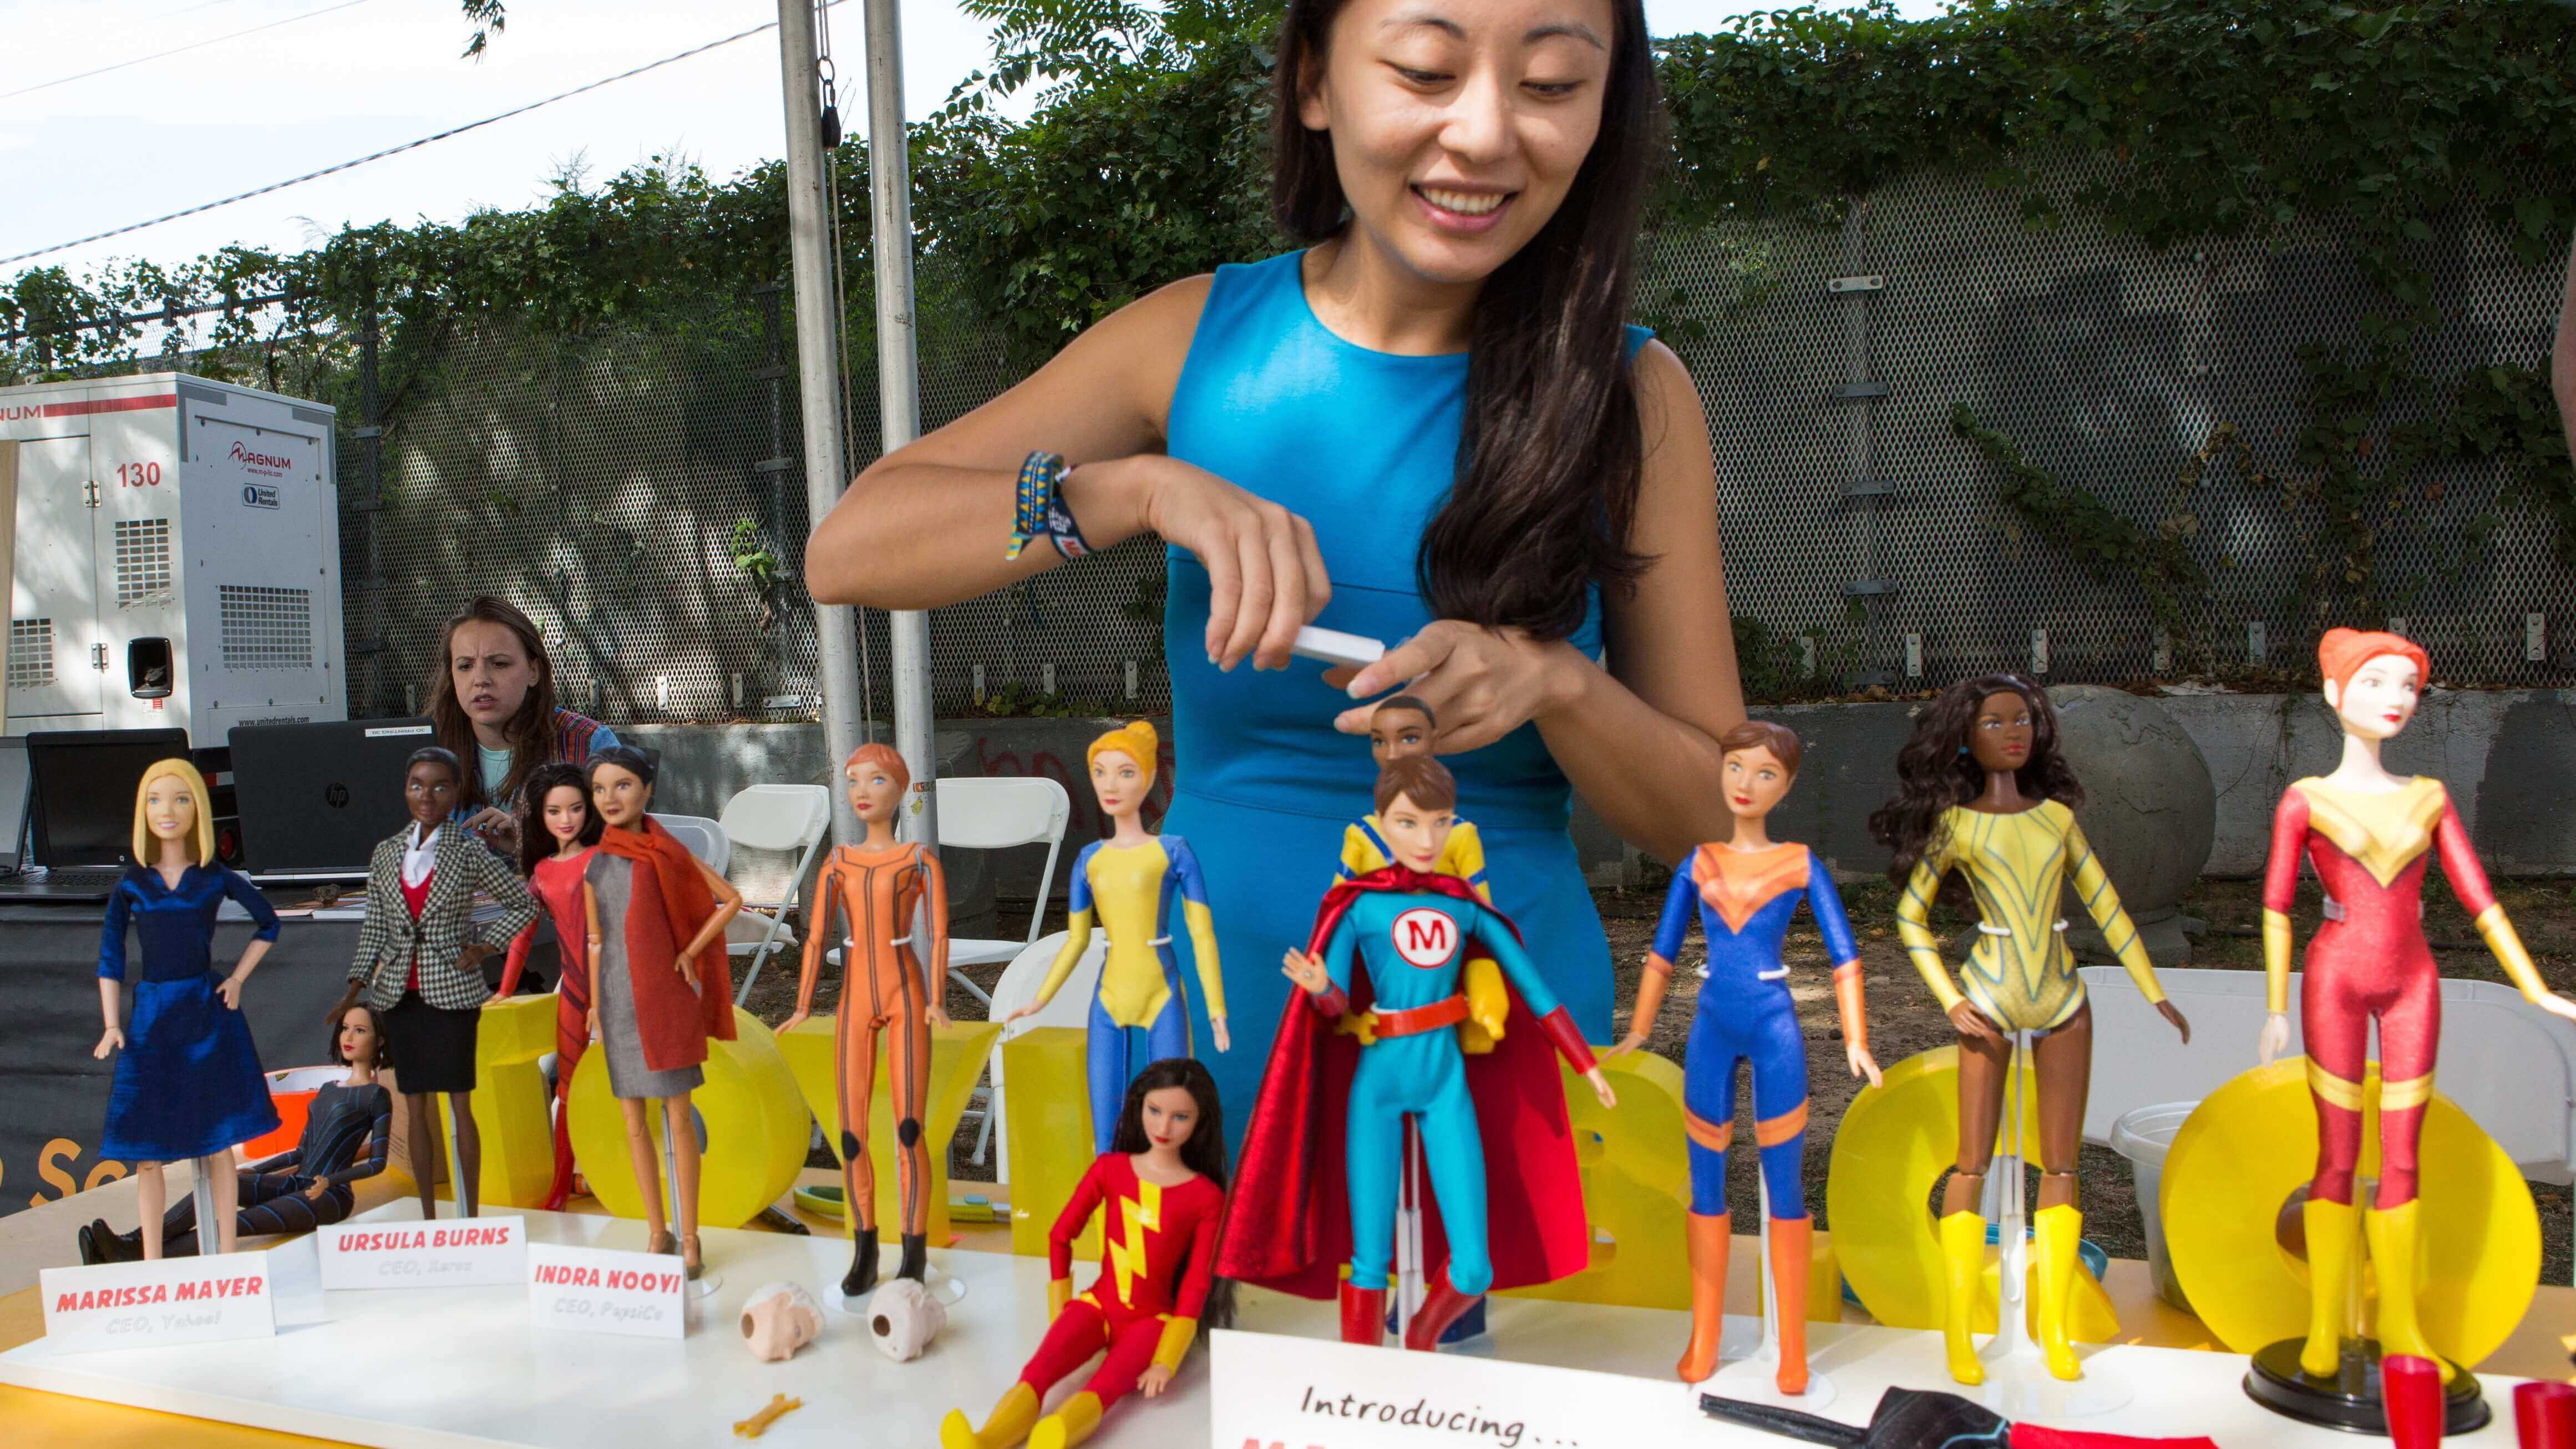 Maker Girl: 3D Printed Action Figures Send Positive Message | All3DP